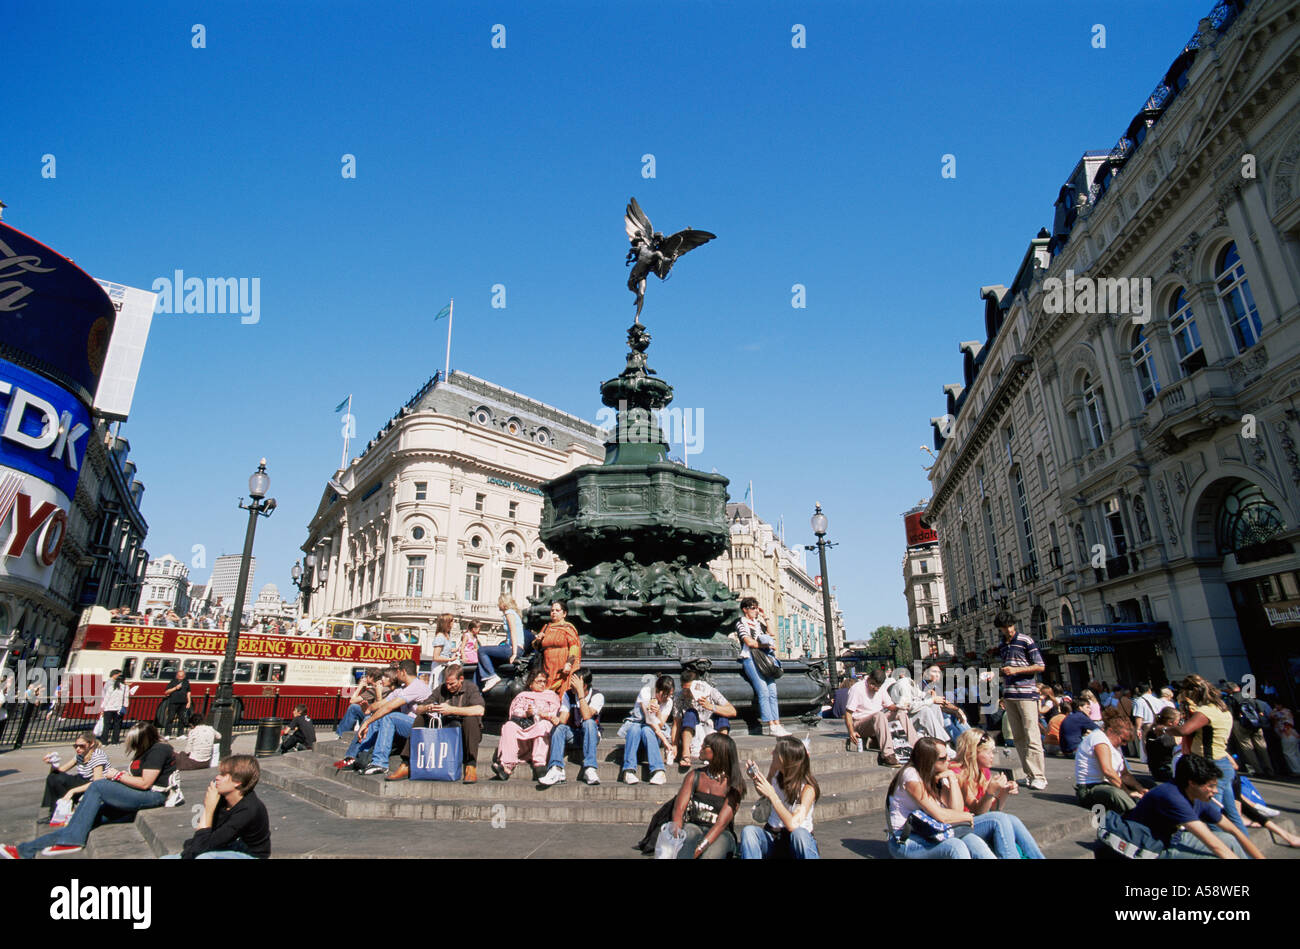 England, London, Picadilly Circus, Eros Statue - Stock Image